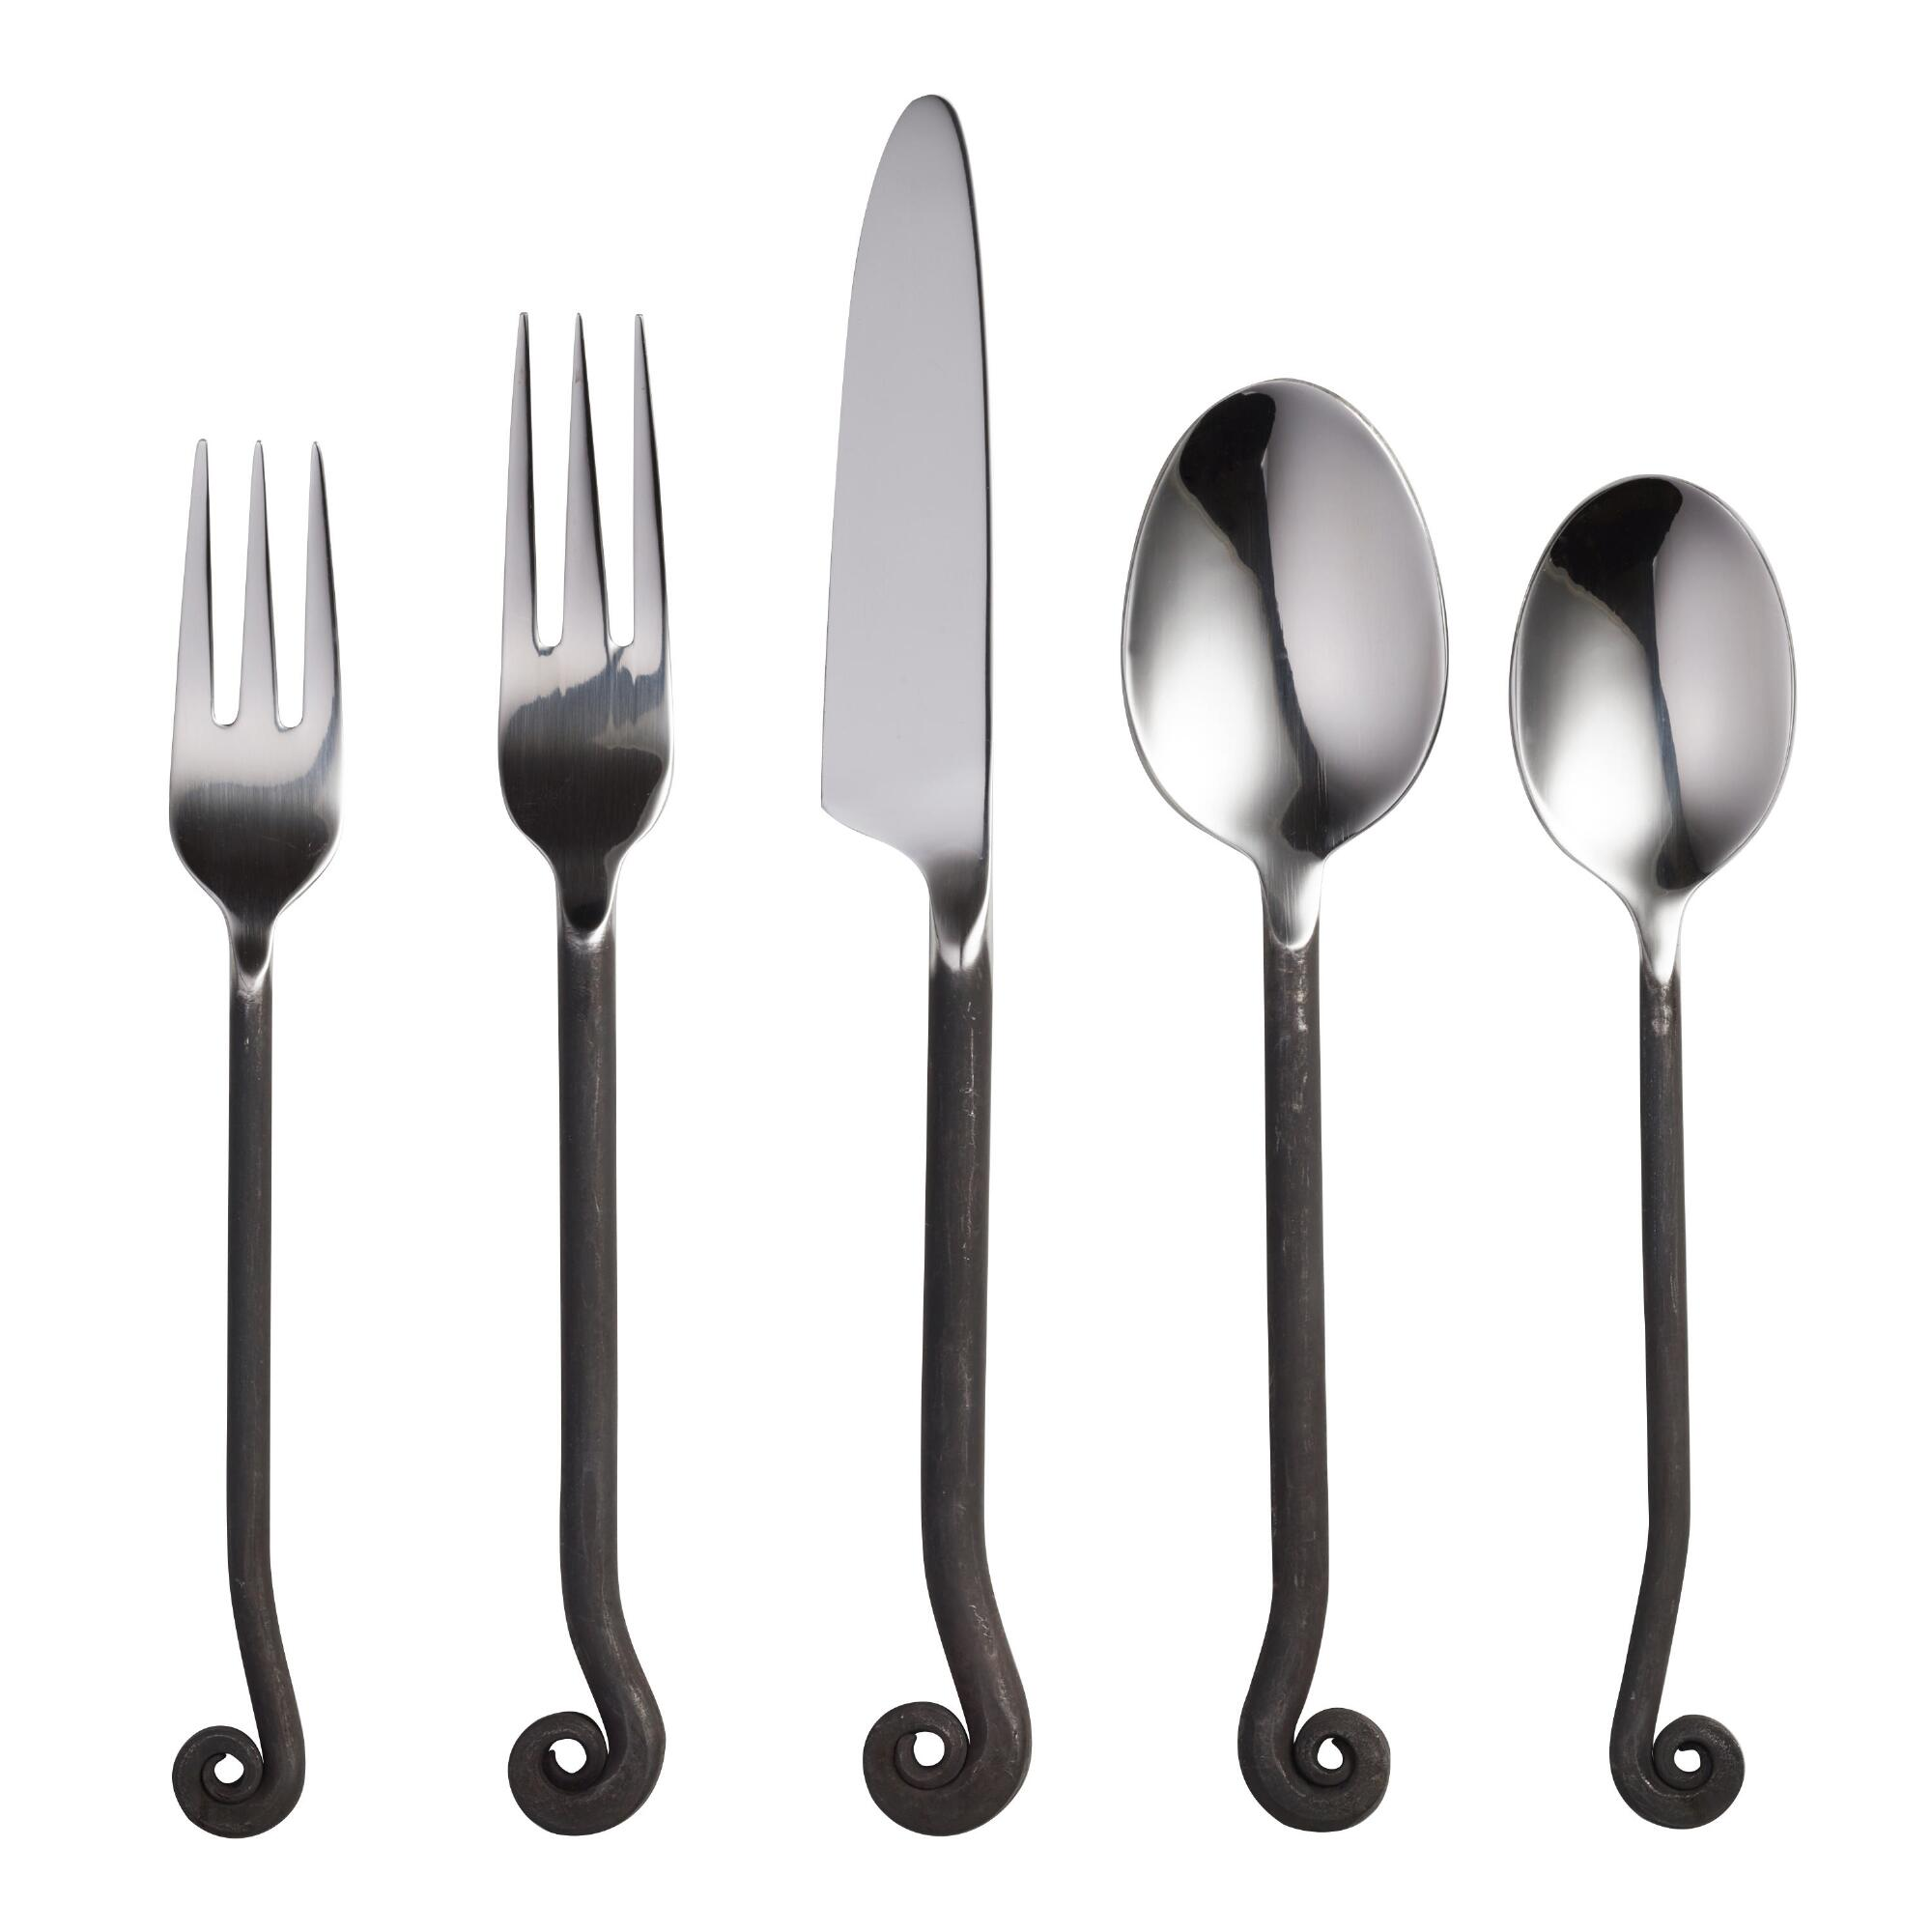 Treble clef flatware world market - Treble clef silverware ...